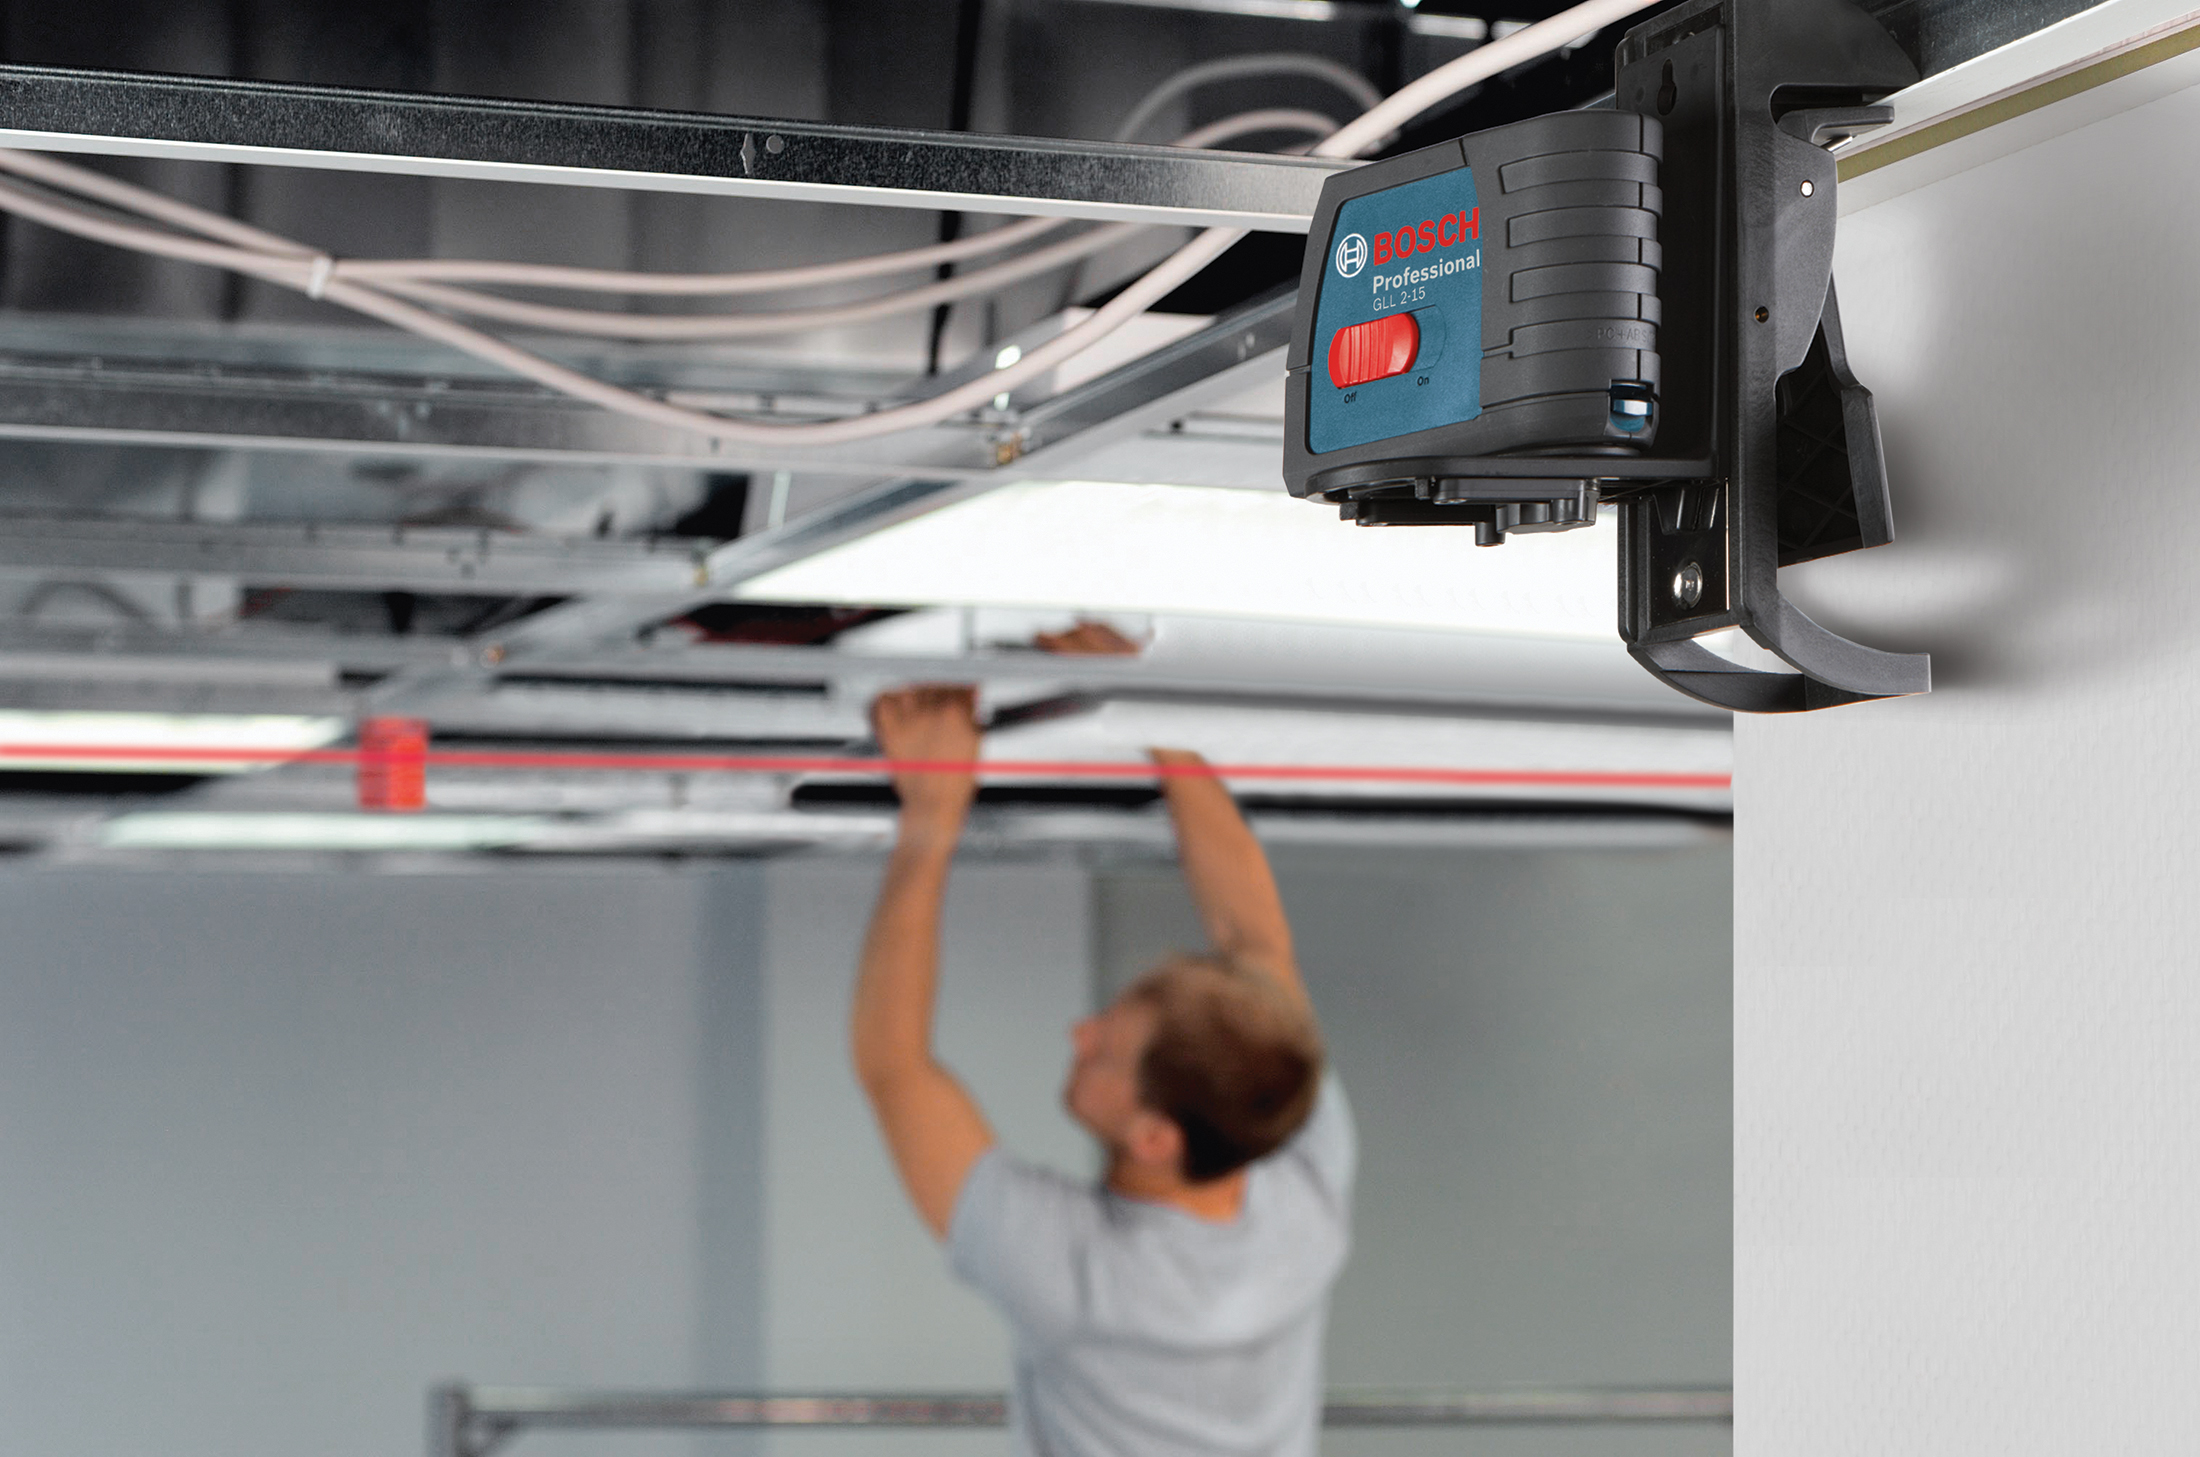 Bosch Self-Leveling Cross-Line Laser GLL 2-15 Drop Ceiling Application (EN)